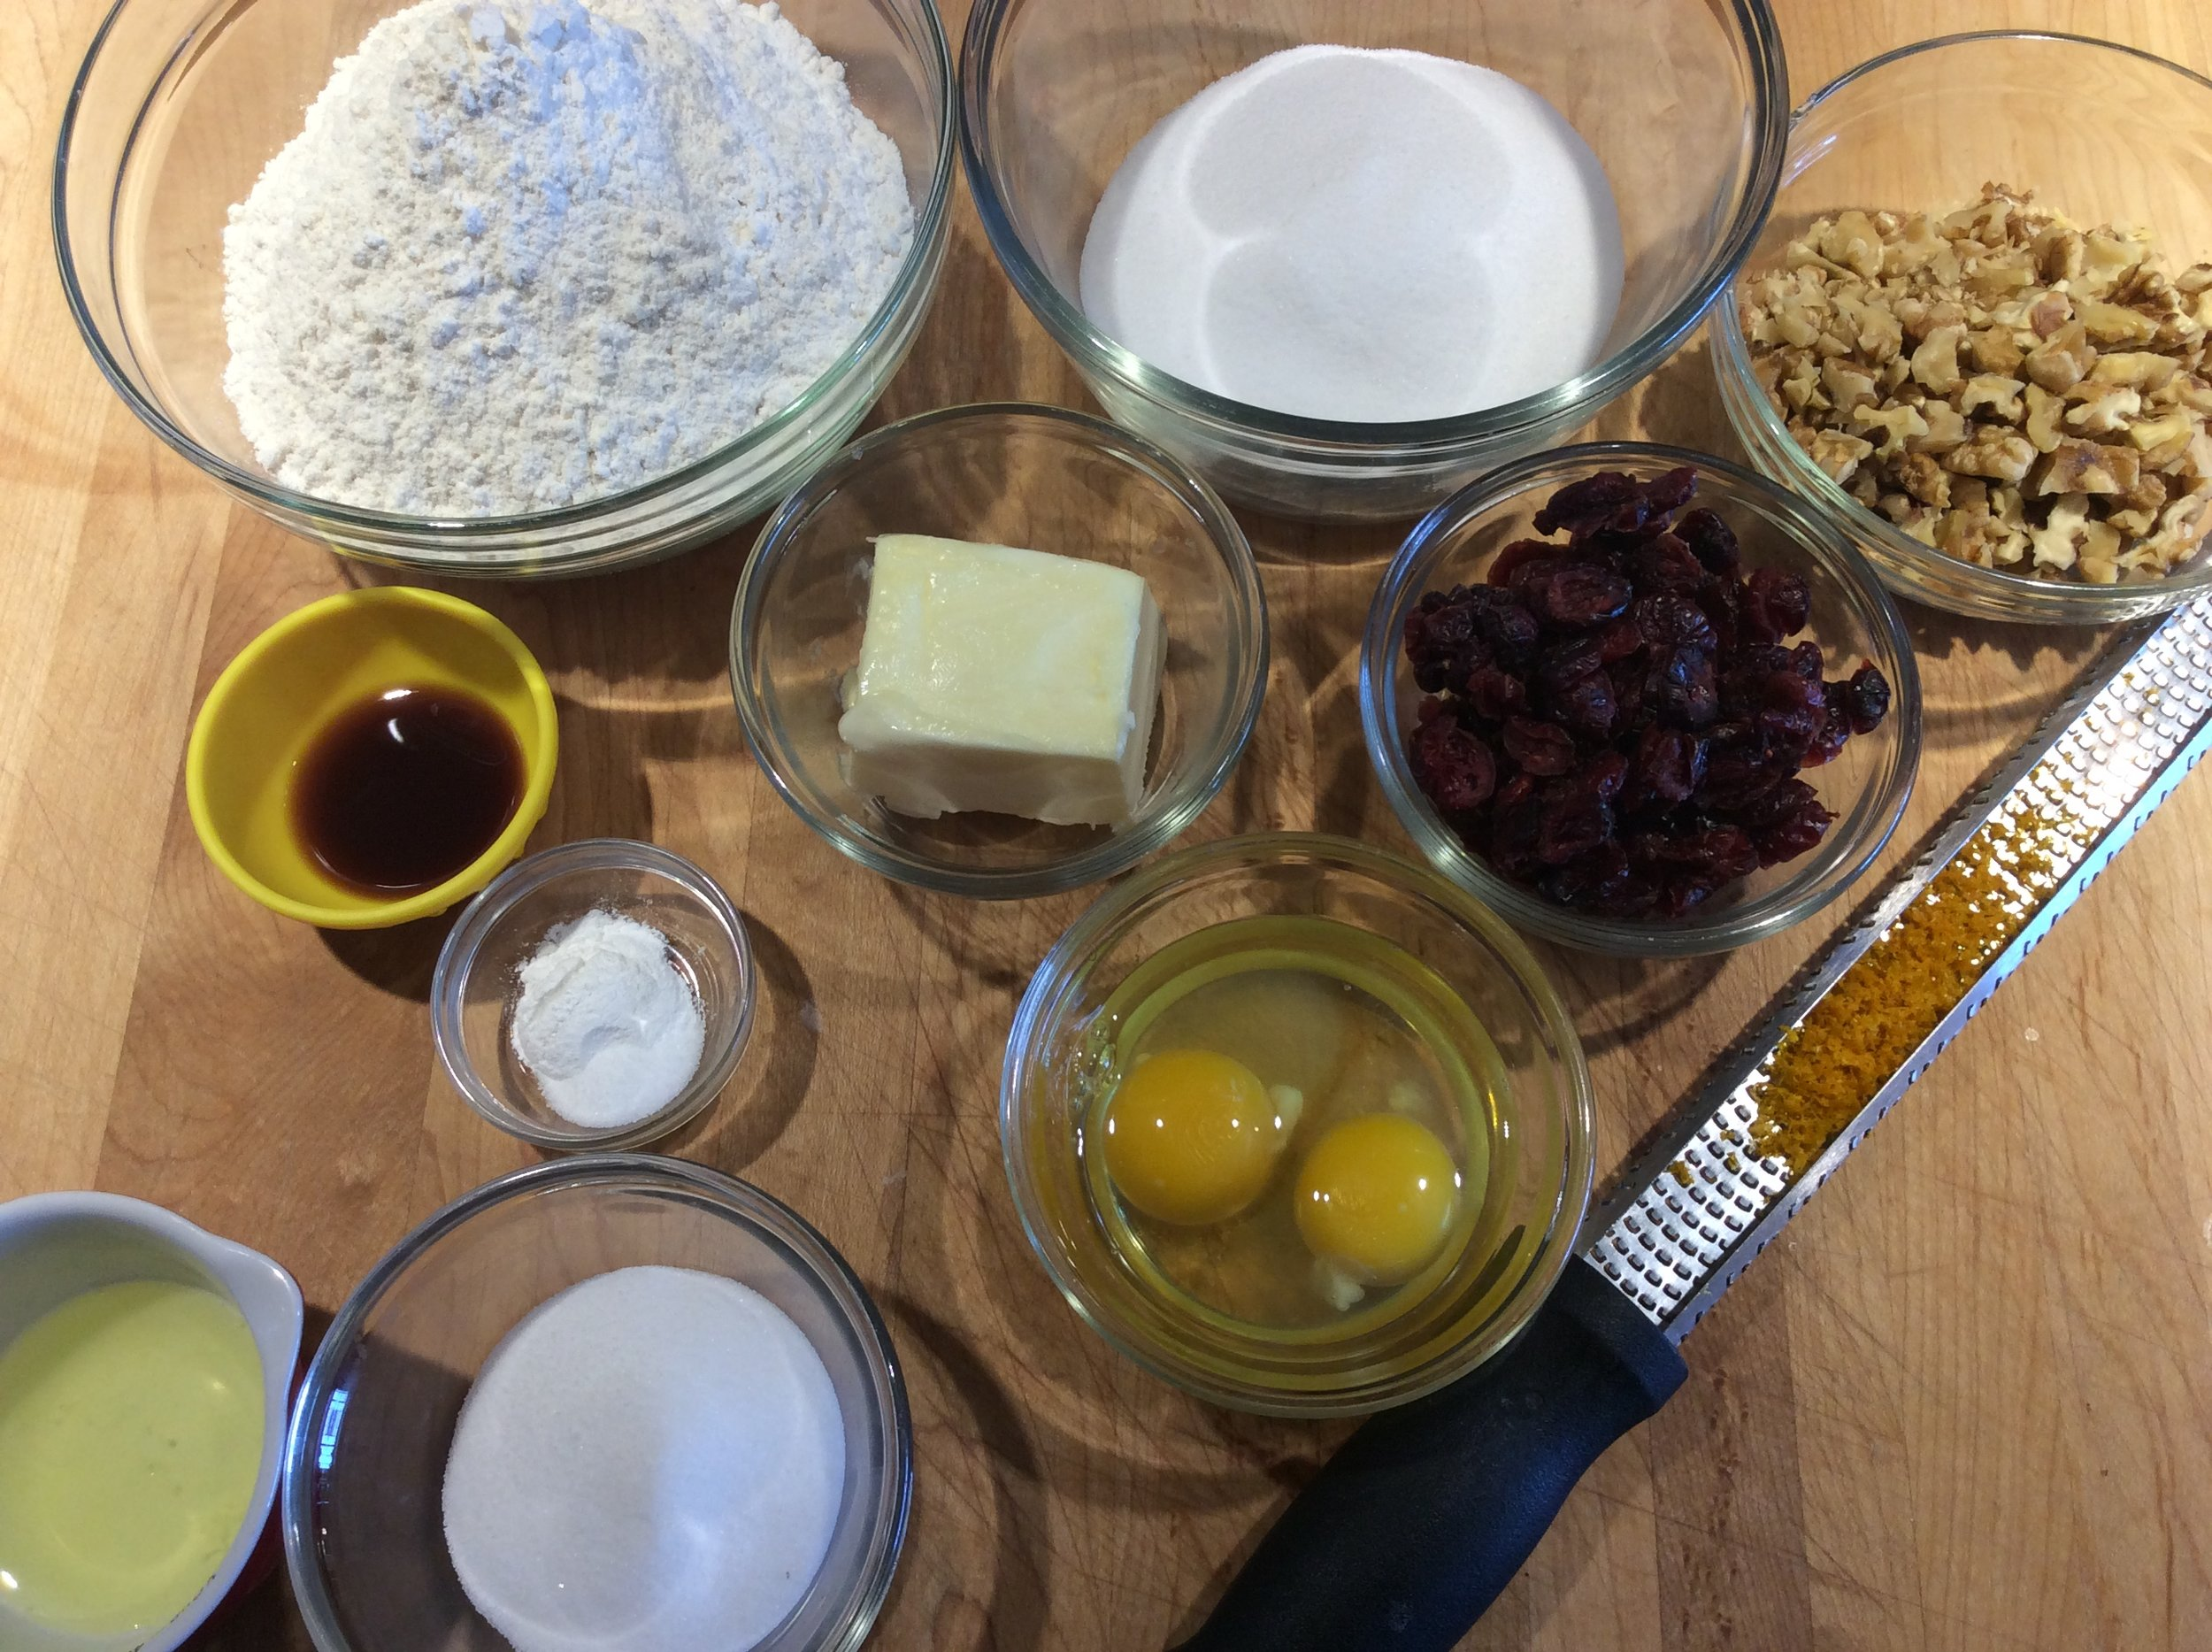 Biscotti Mise en place - this variation is cranberry, walnut and orange zest